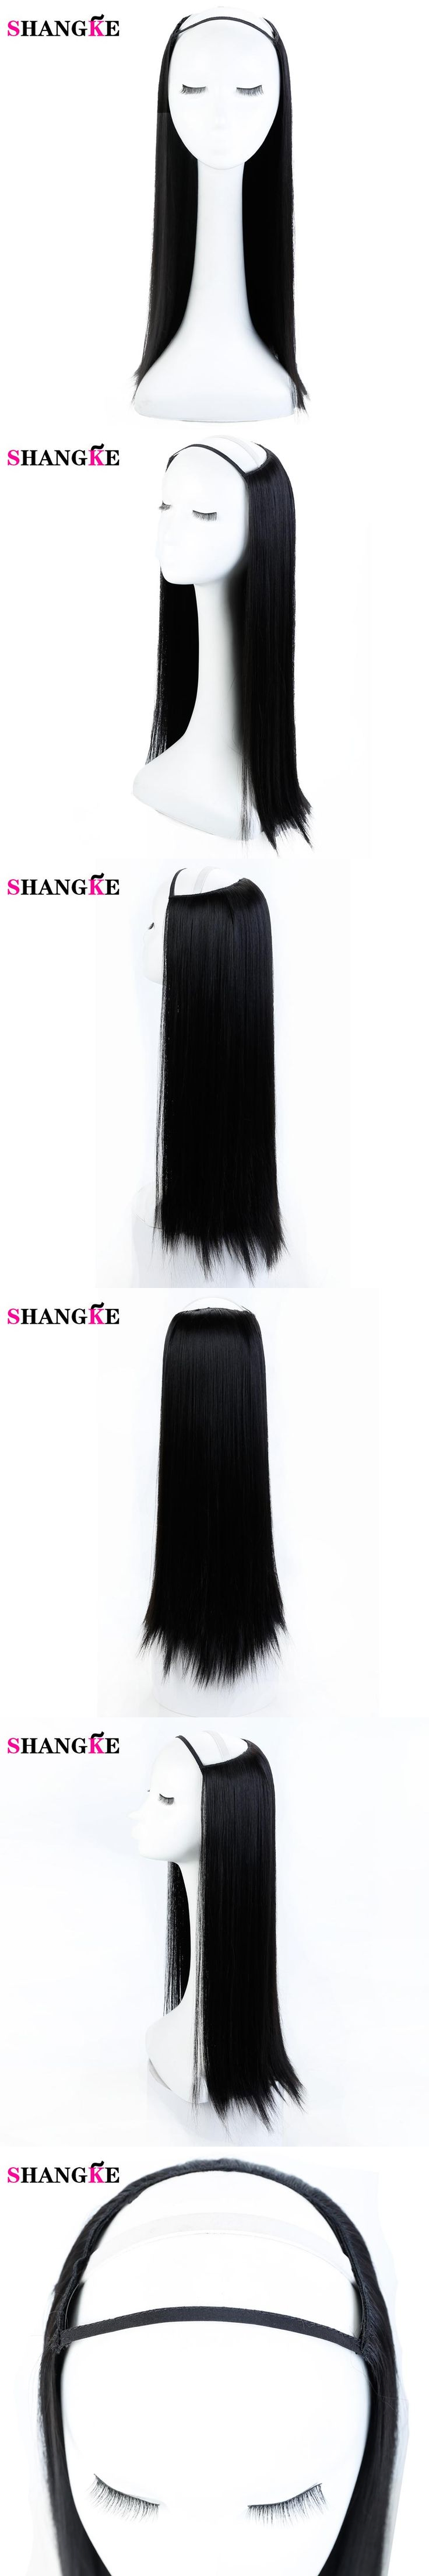 SHANGKE For American European Synthetic Heat Resistant Half Wigs U shape Hair wigs Long Straight Headband Wigs For Daily Use